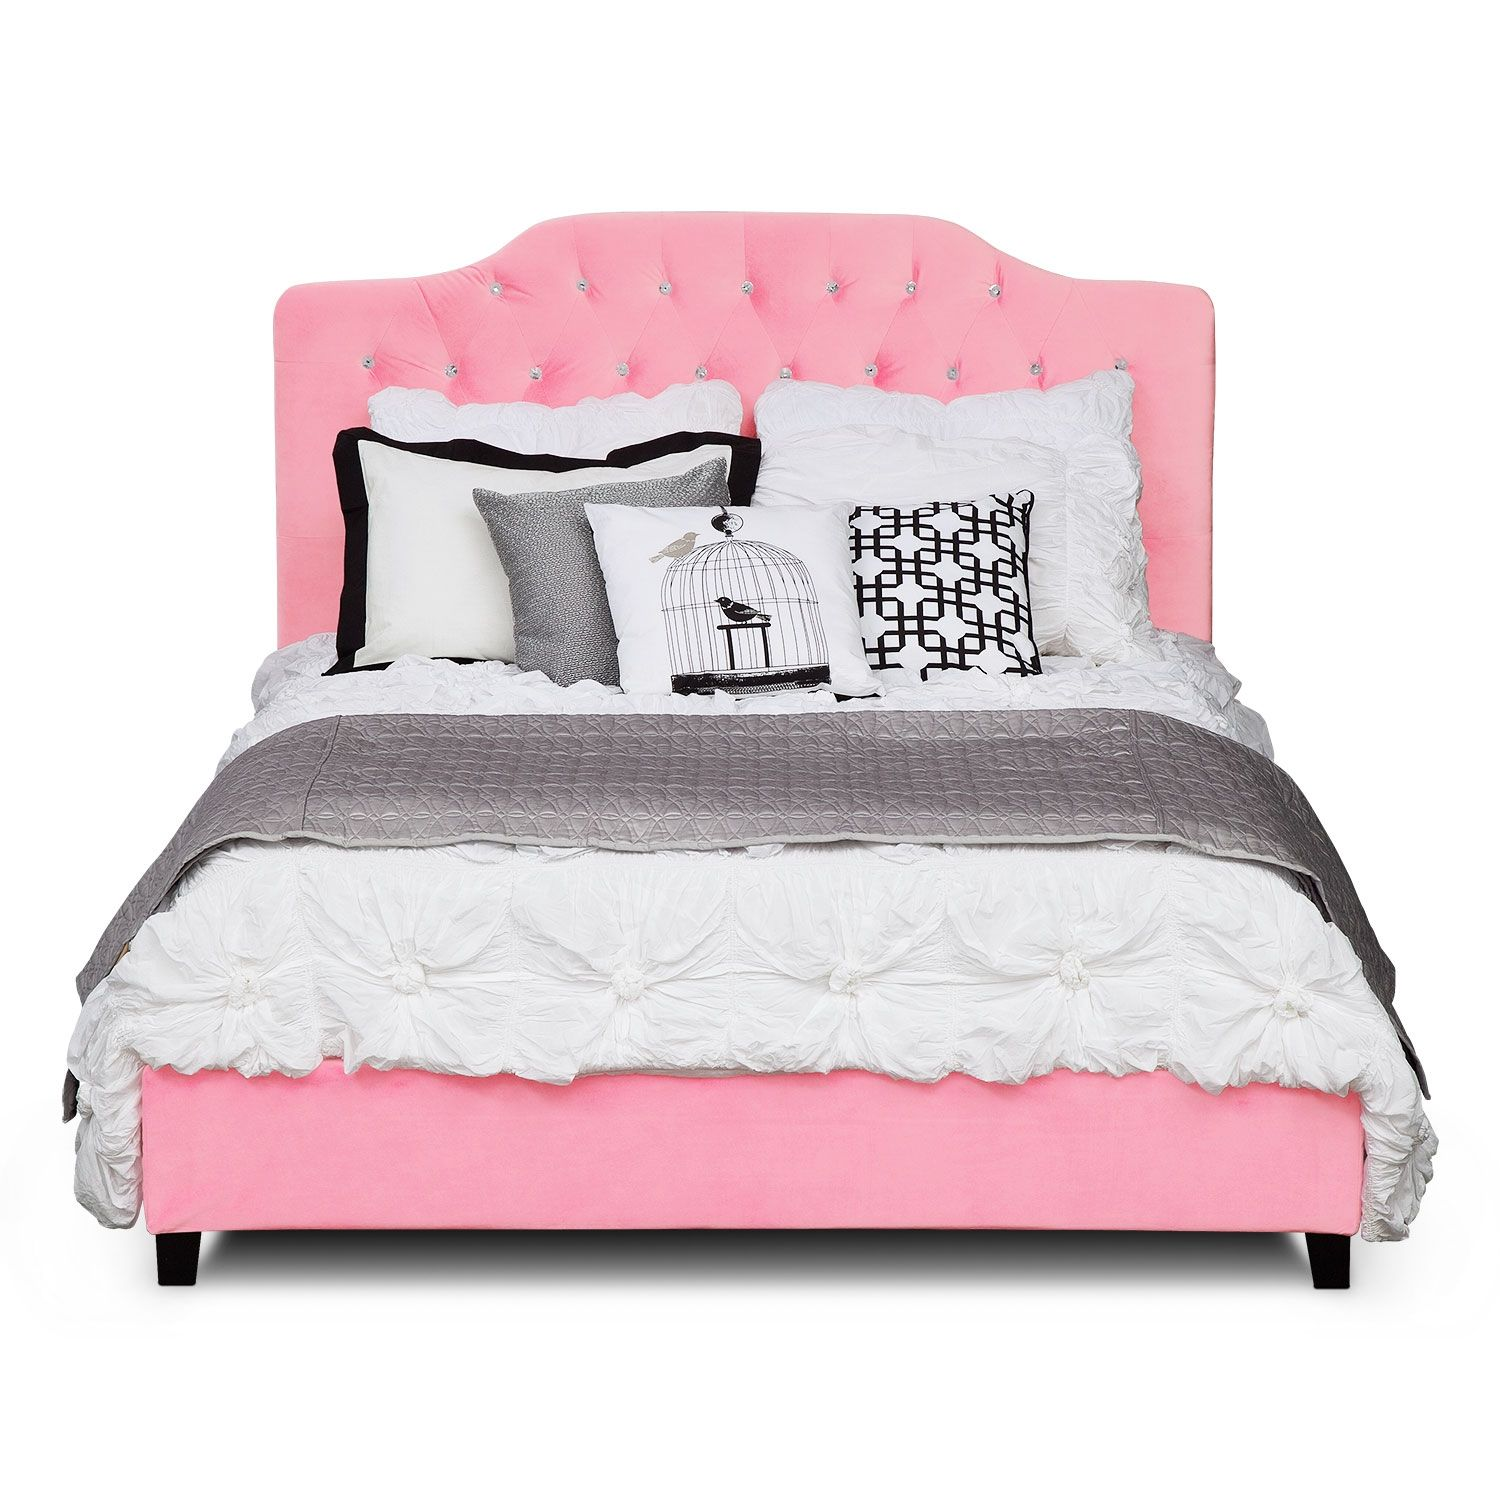 Valerie Queen Bed Value City Furniture Queen Mattress Set Princess Furniture Queen Beds